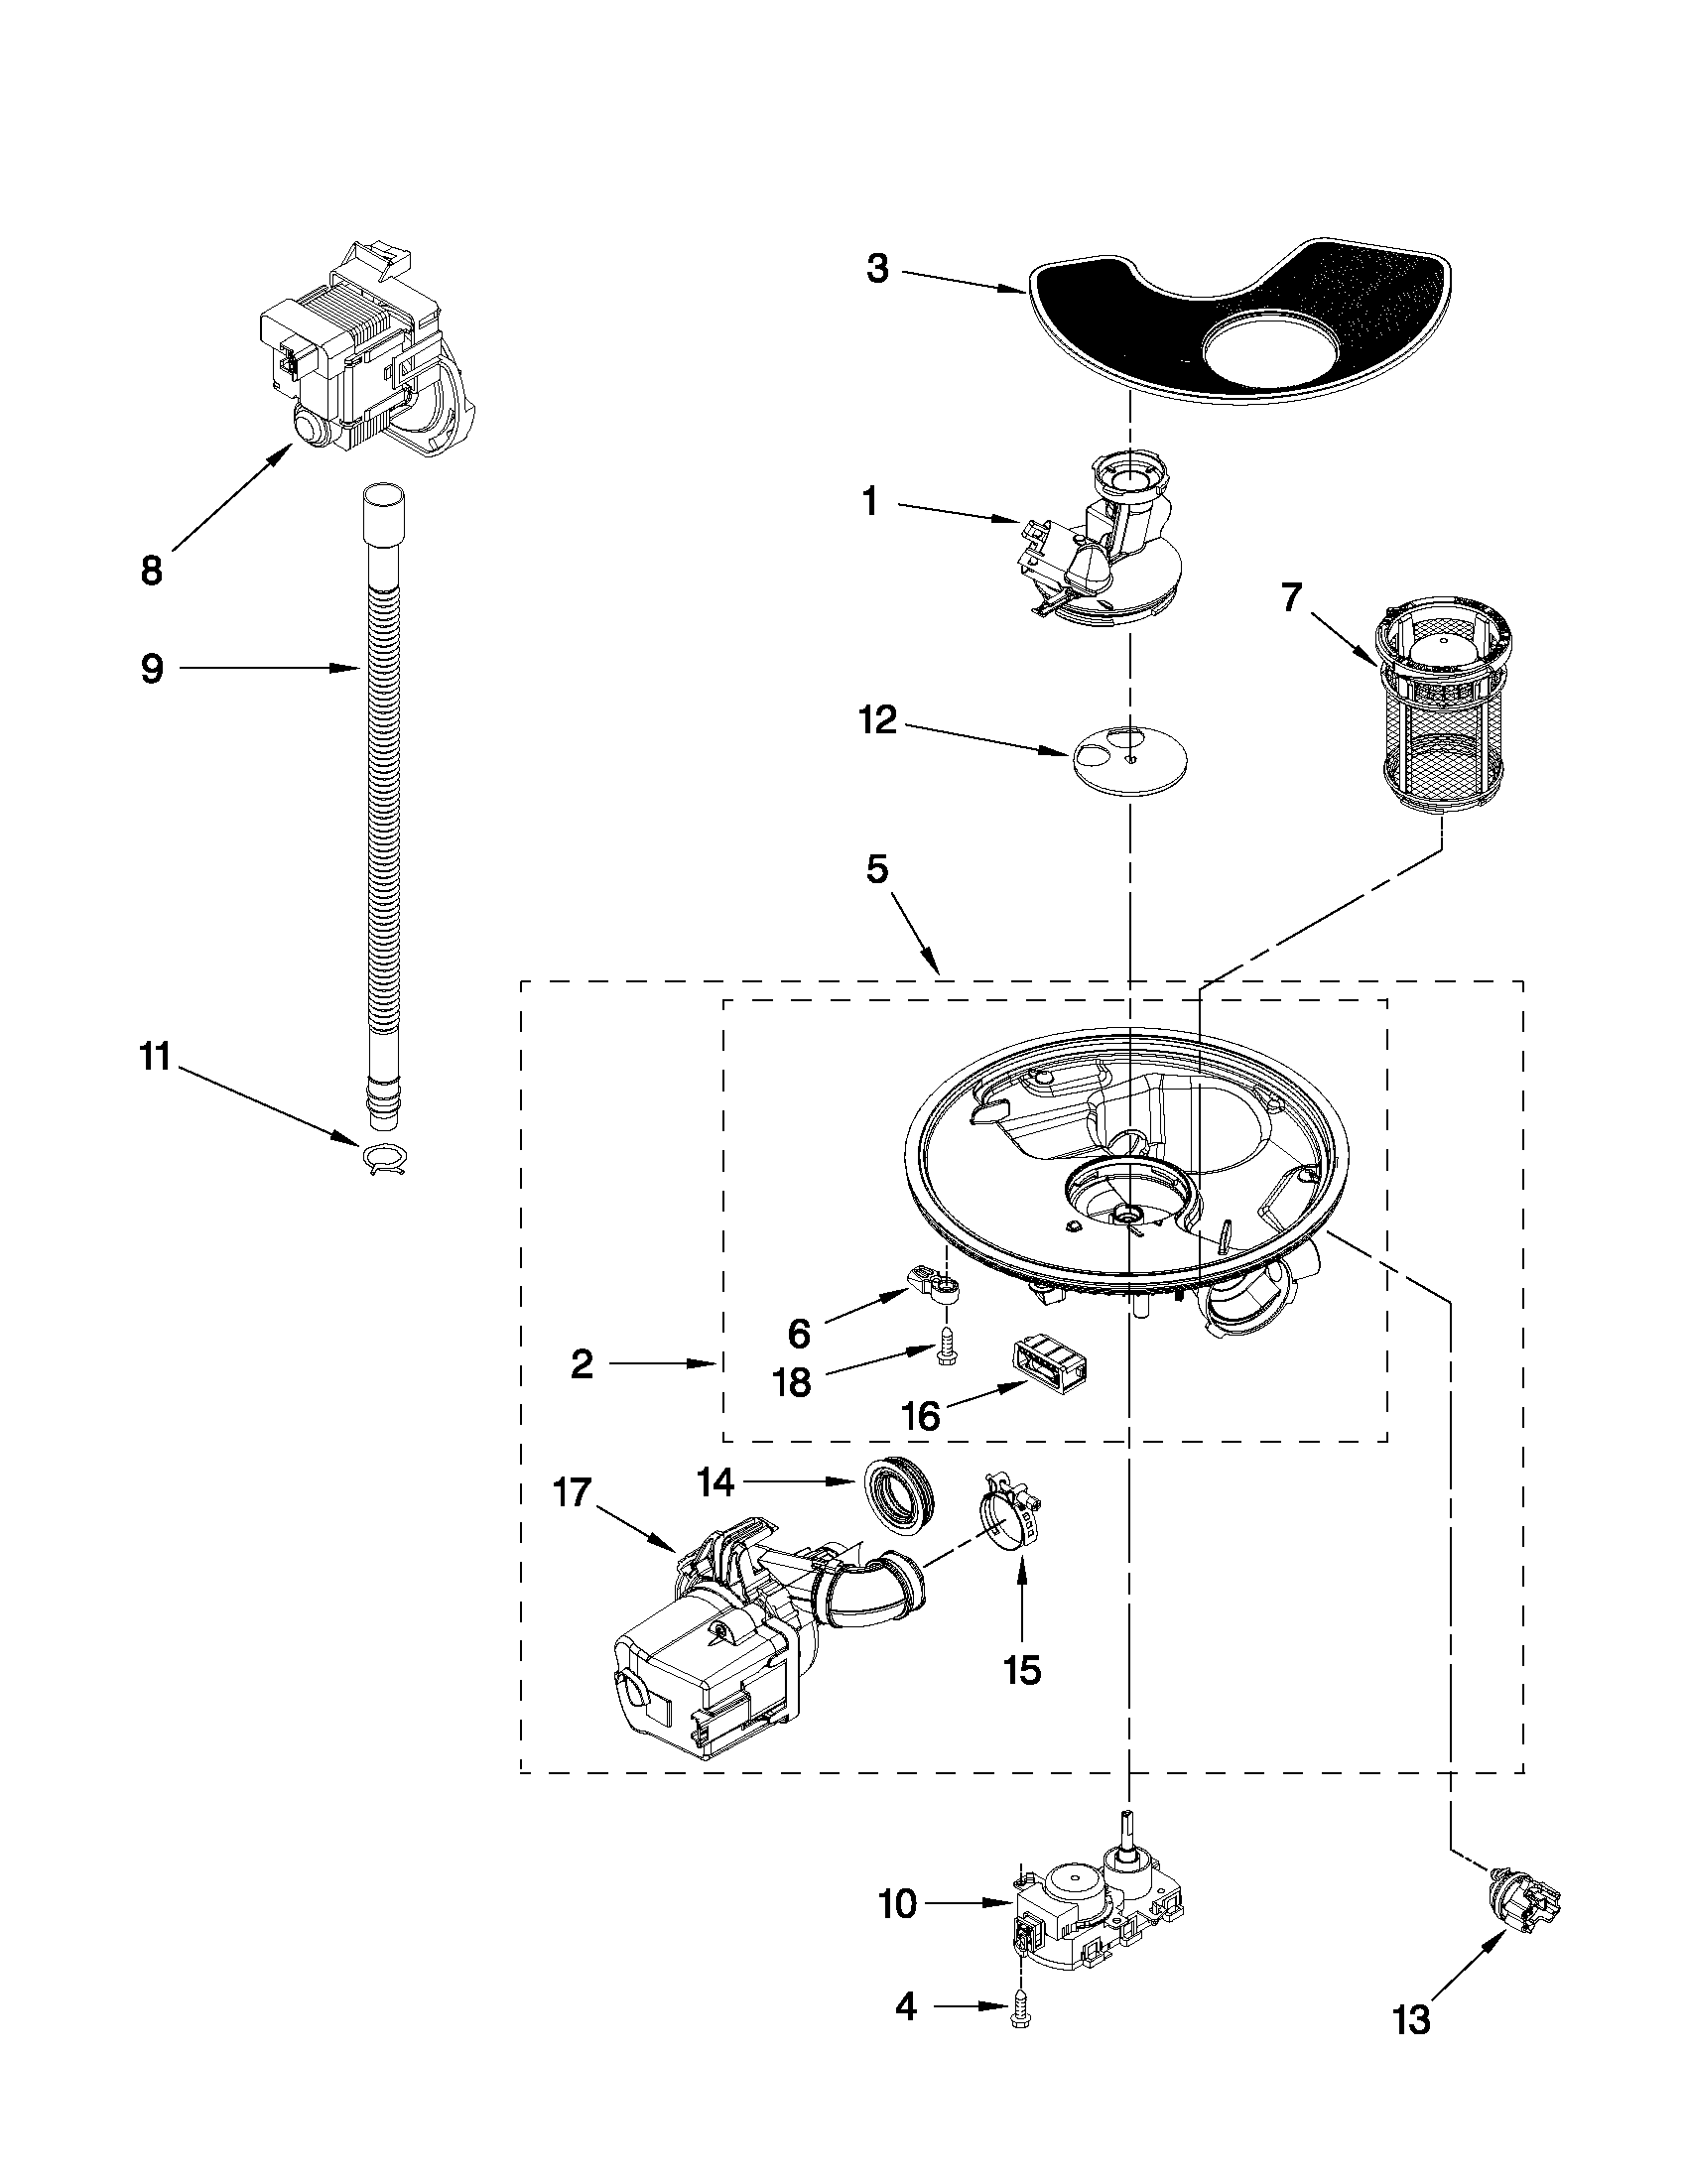 Whirlpool WDF730PAYB1 pump and motor parts diagram